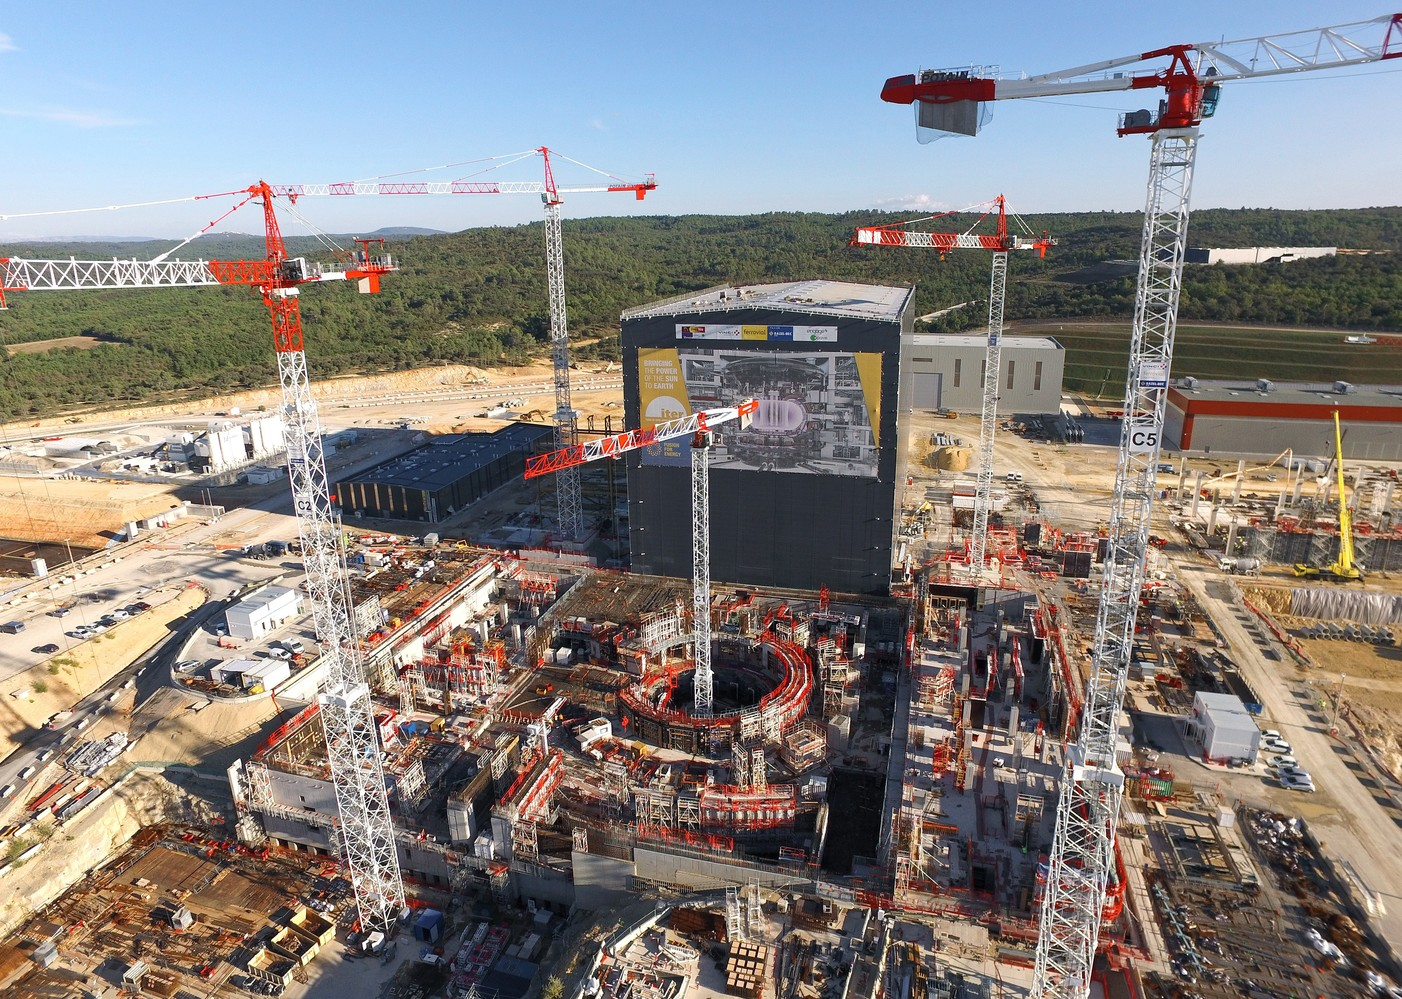 Under construction: the ITER research tokamak in France. - Image Credit: ITER